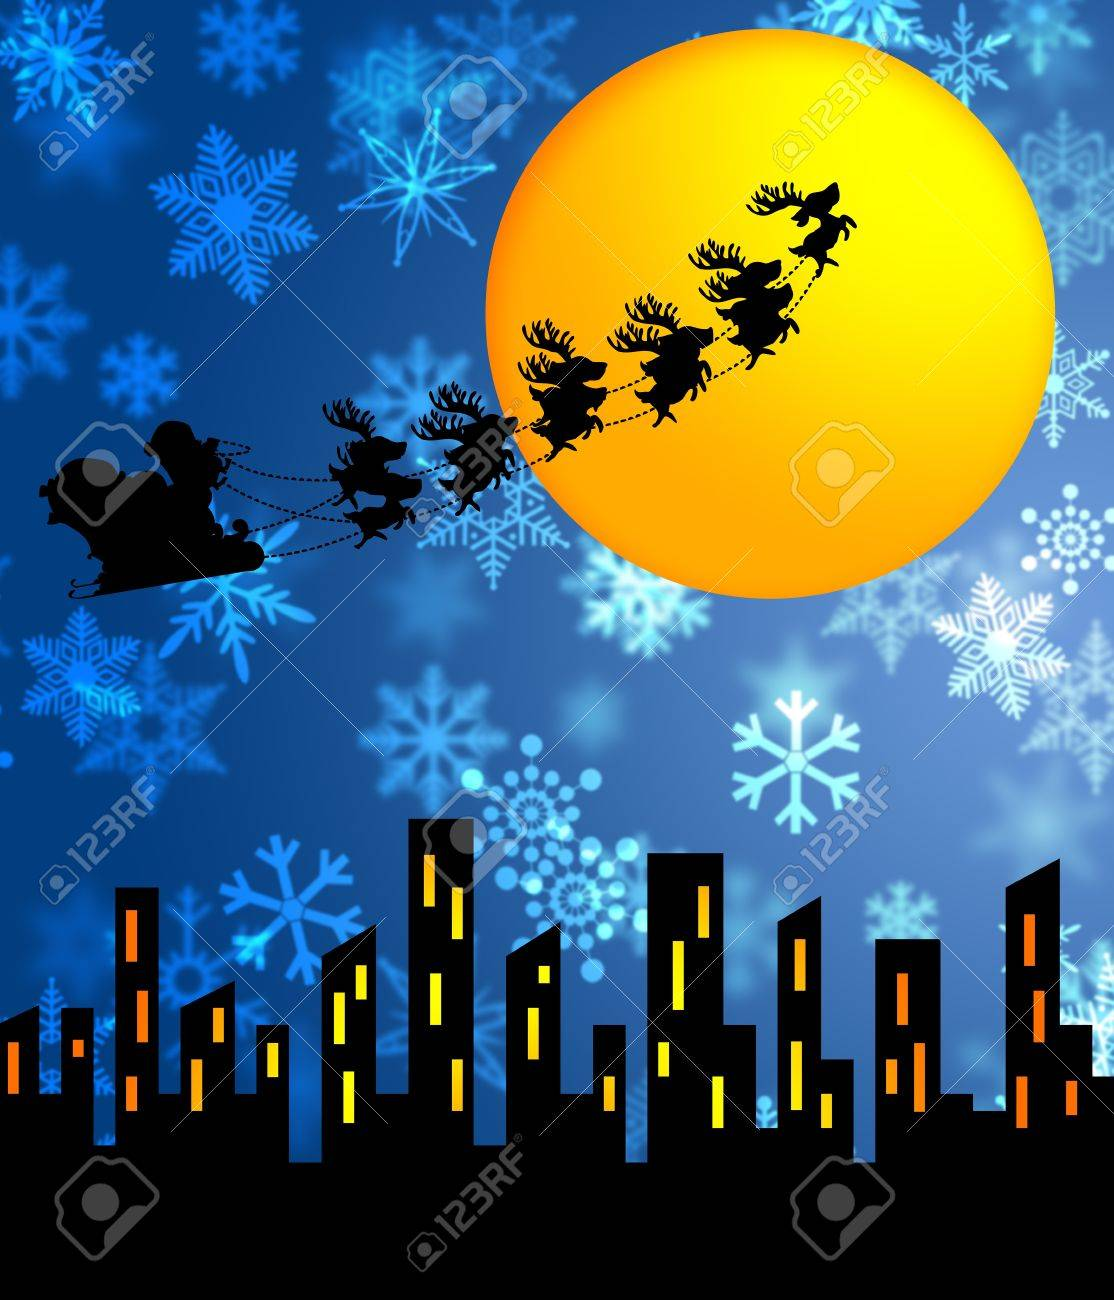 Santa Sleigh and Reindeers Flying over the City with Moon Illustration Stock Photo - 11134086